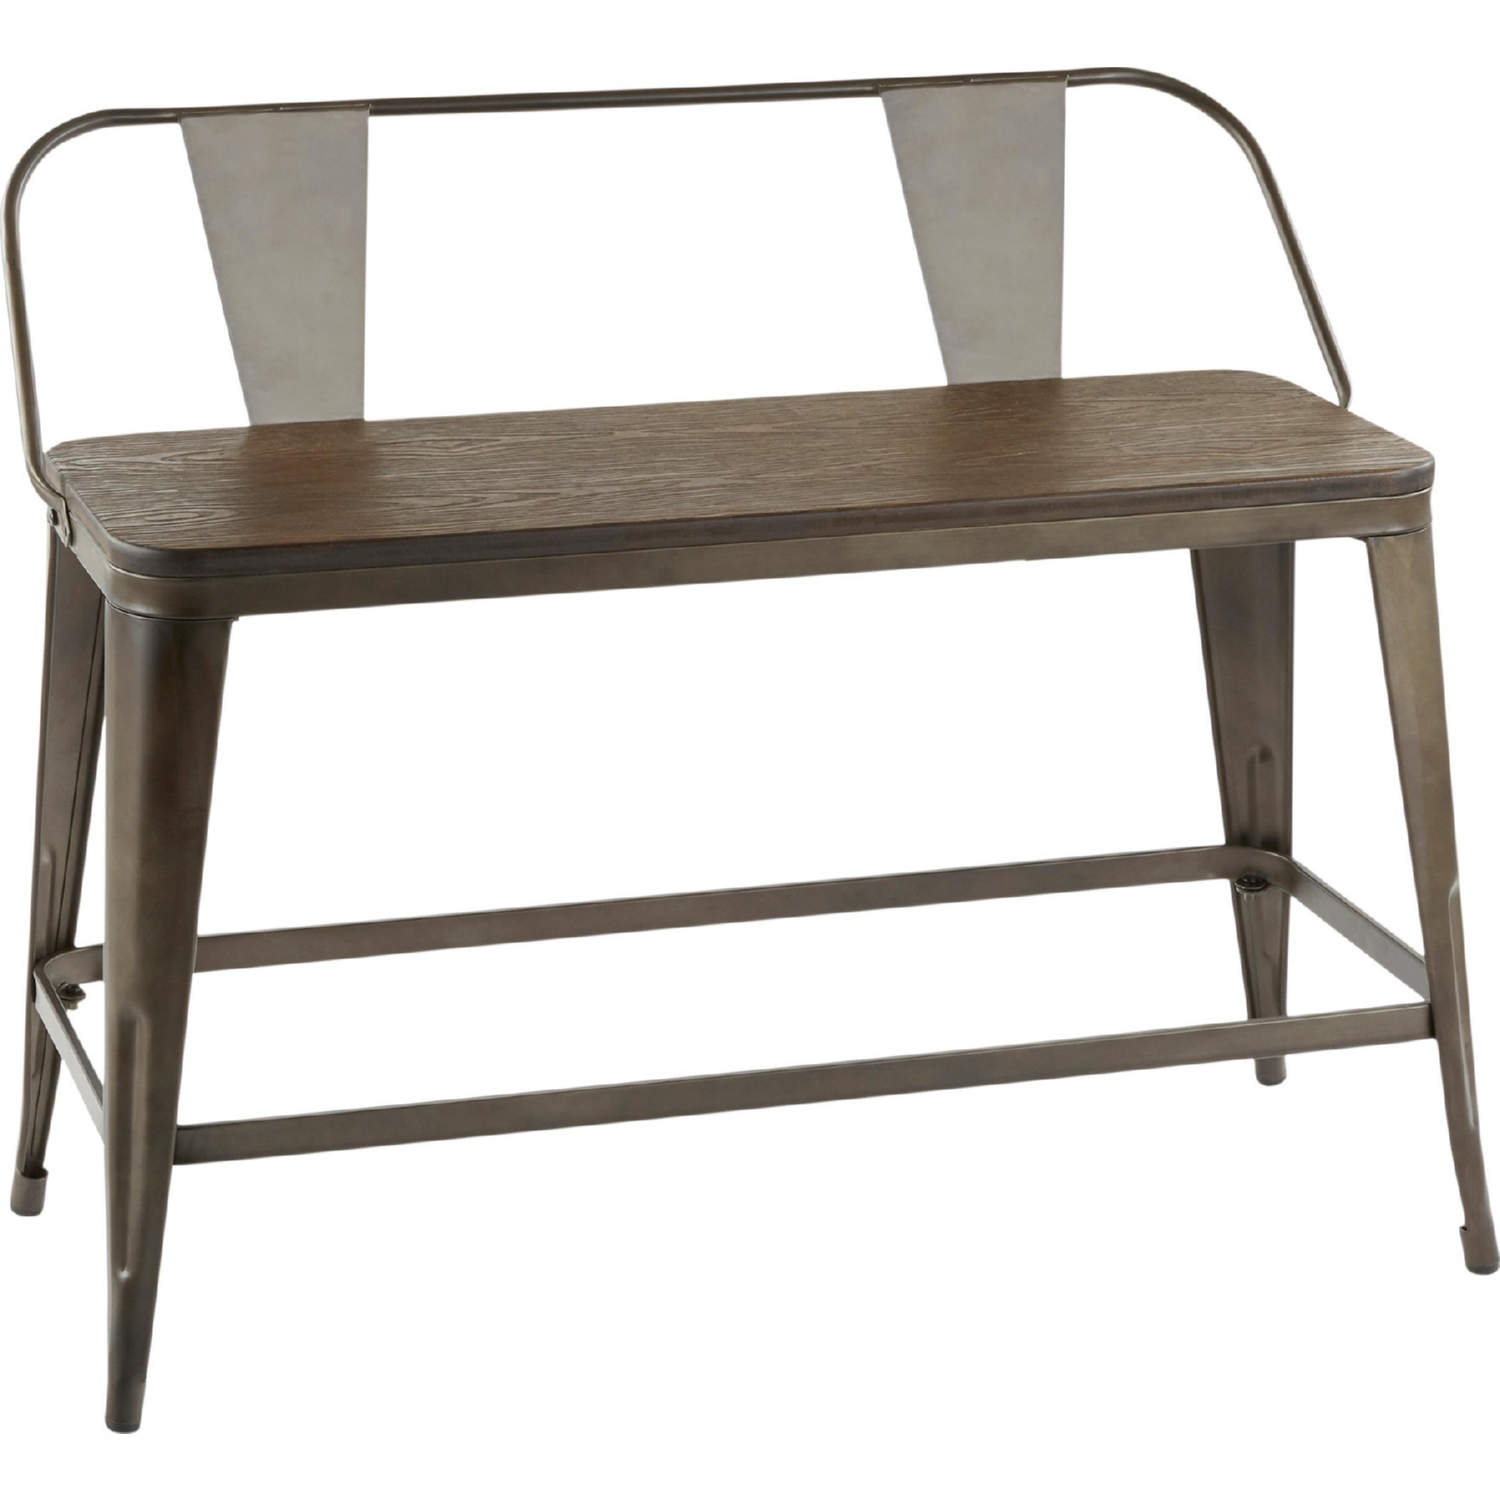 Marvelous Oregon Counter Dining Bench In Antique Metal Espresso Grain Bamboo By Lumisource Bralicious Painted Fabric Chair Ideas Braliciousco